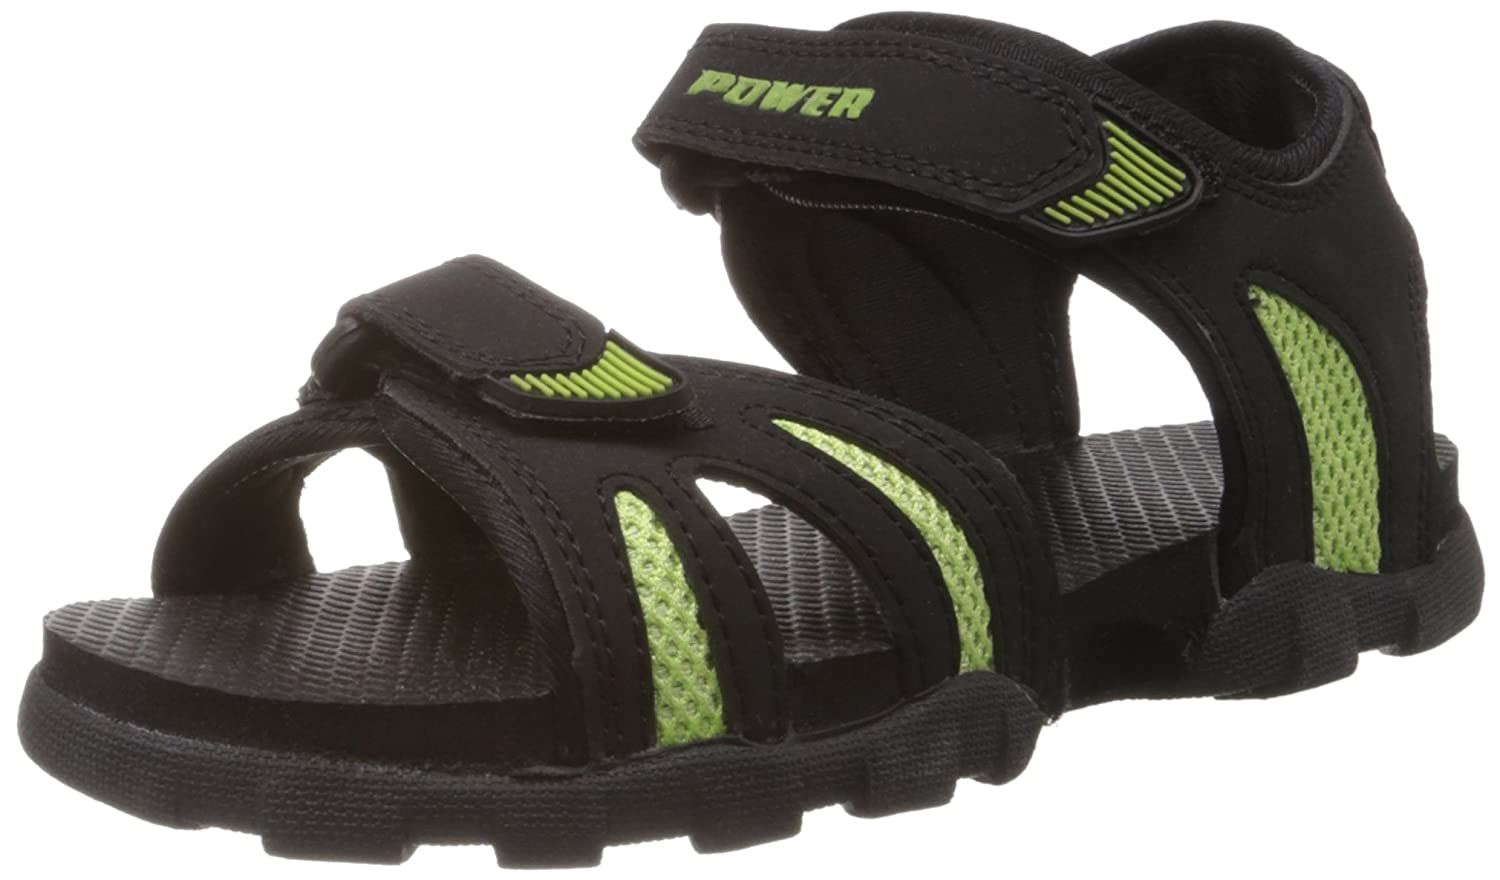 Power Boys Rafter Black Sandals and